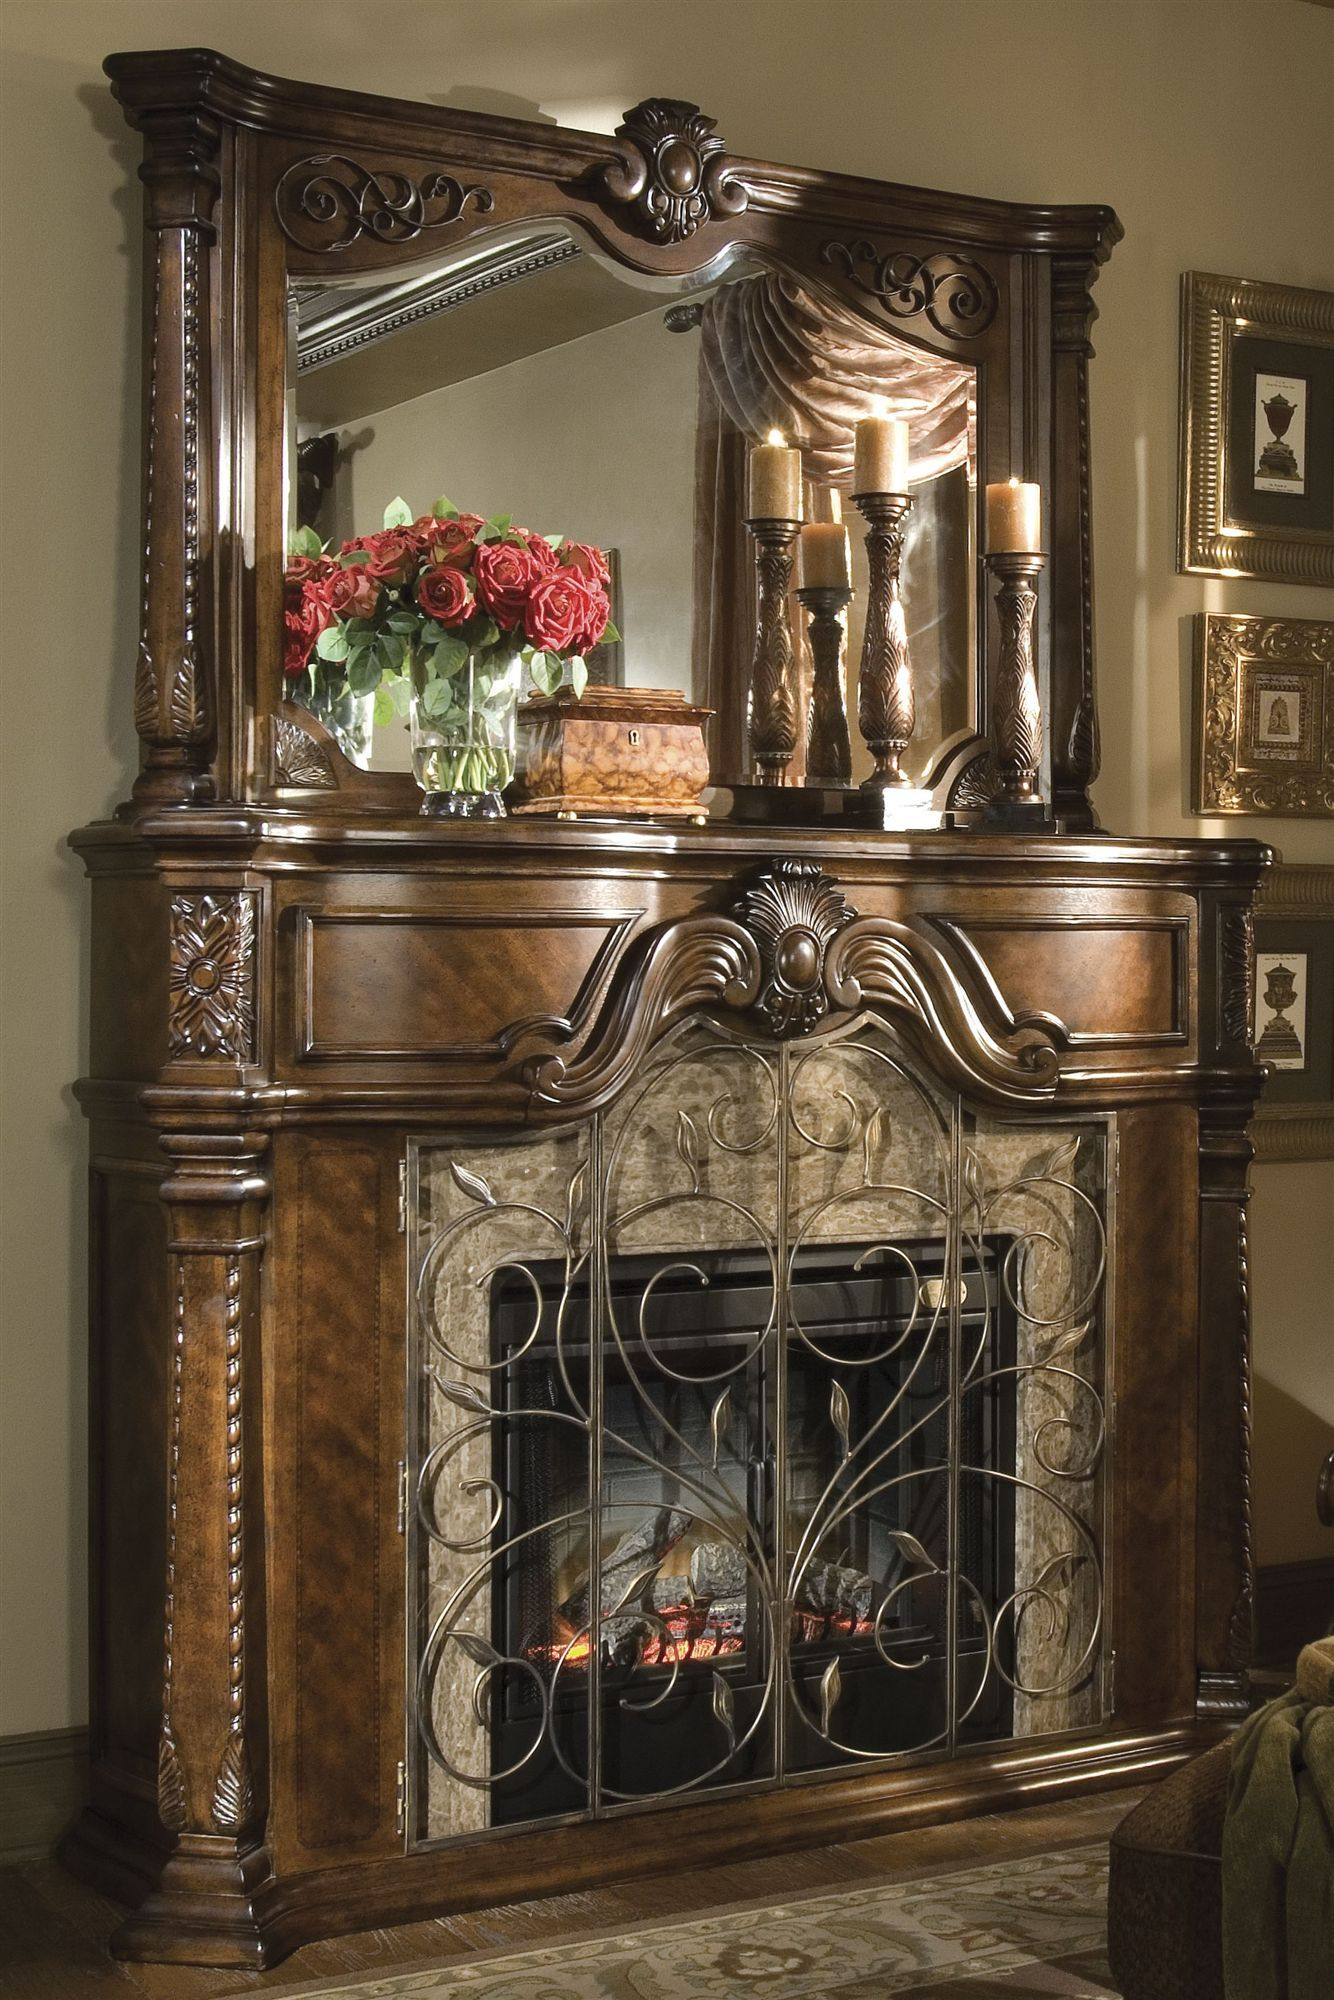 Windsor Court Fire Place The Cultural Traditions And